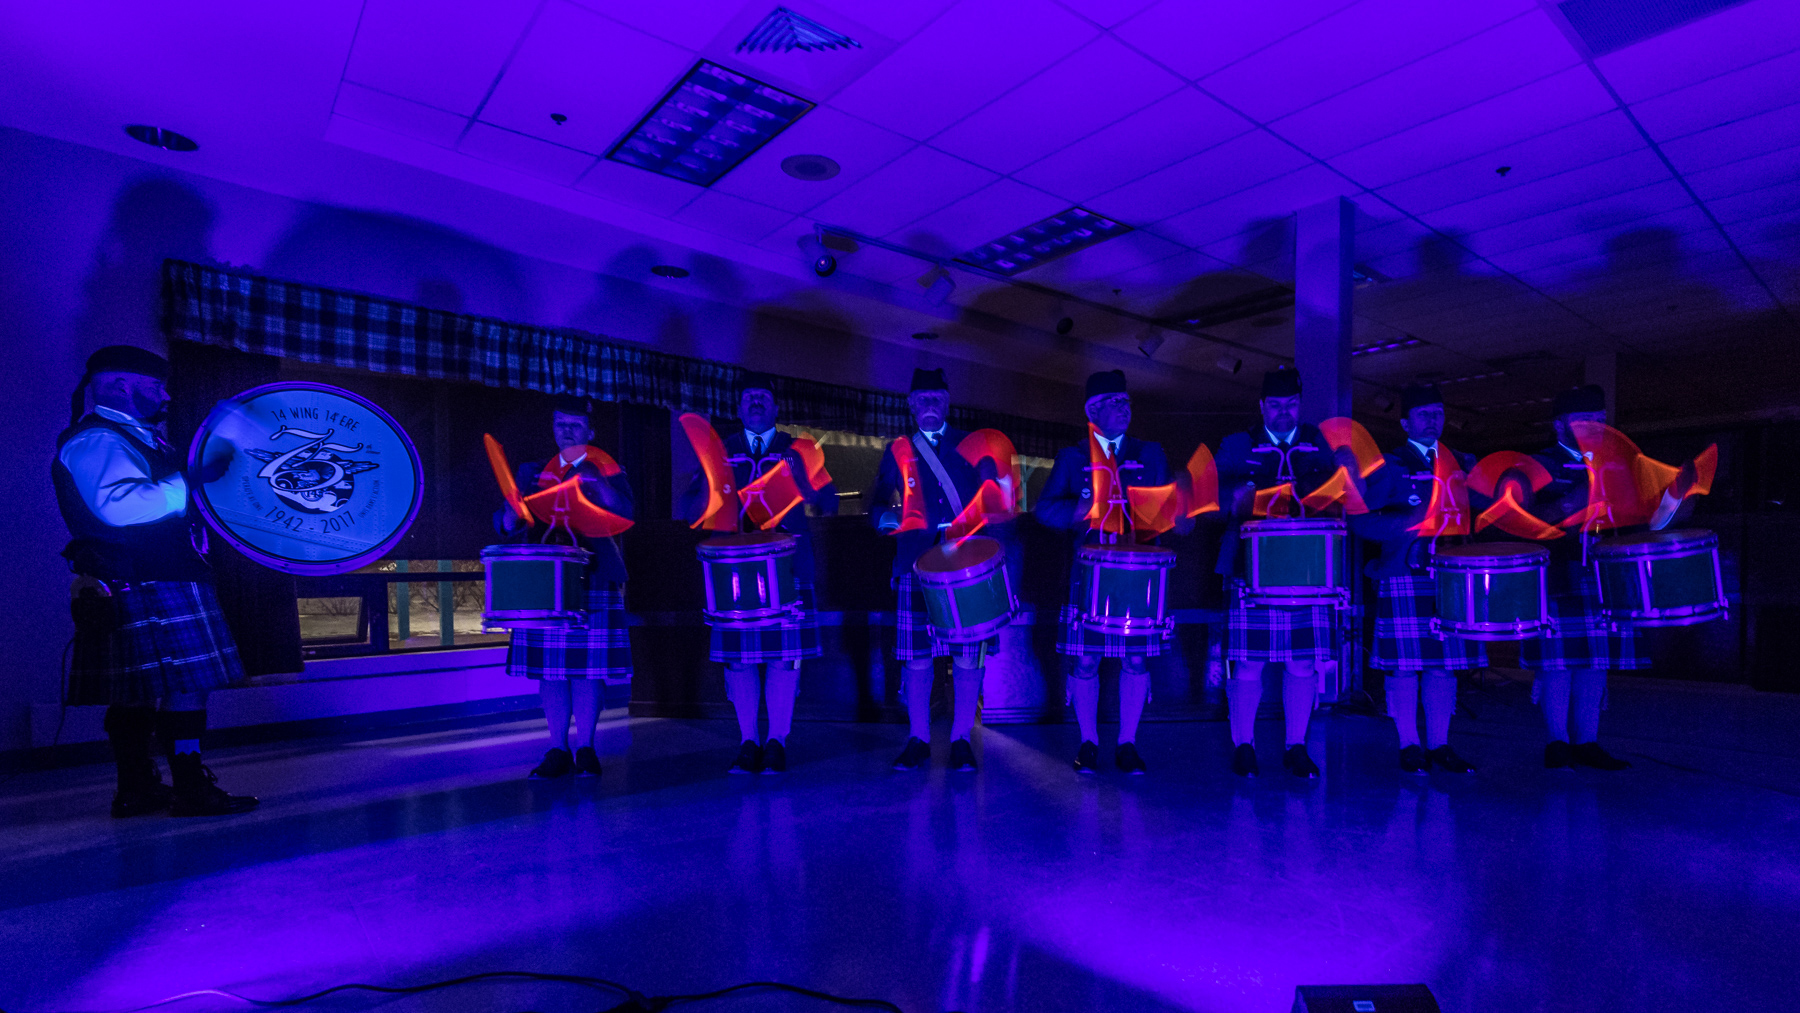 Members of the 14 Wing Bands present a black light drum line show on March 28, 2018, during the wing's annual RCAF mess dinner. PHOTO: Leading Seaman Louis-Philippe Dubé, GD01-2018-0129-039